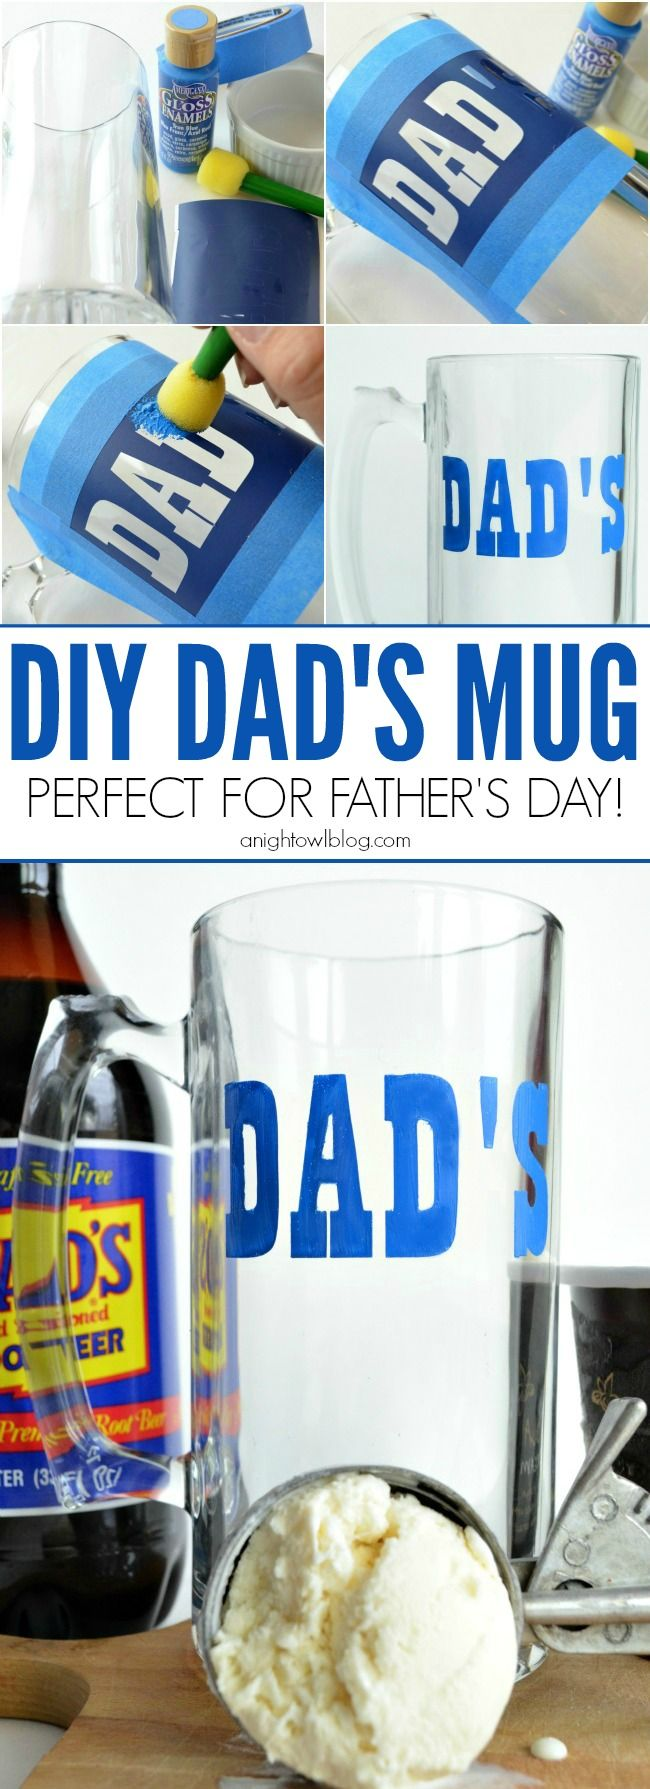 DIY Dad's Mug - perfect gift for Father's Day!